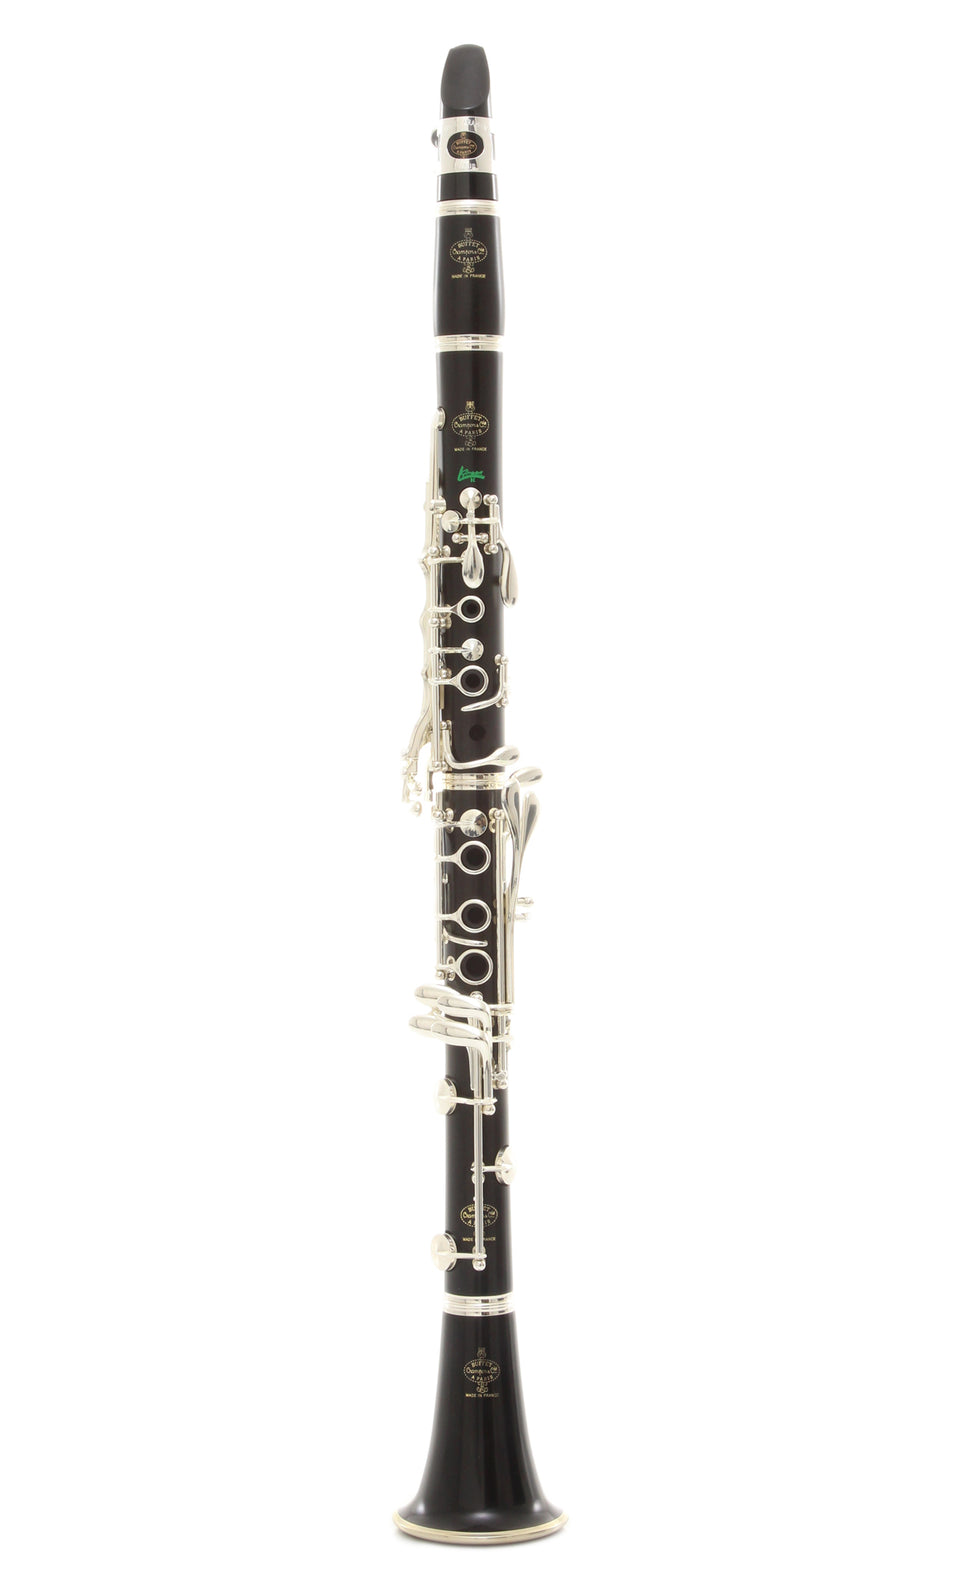 Buffet Crampon R13 Green Line B-Flat Clarinet - Nickel Plated Keys